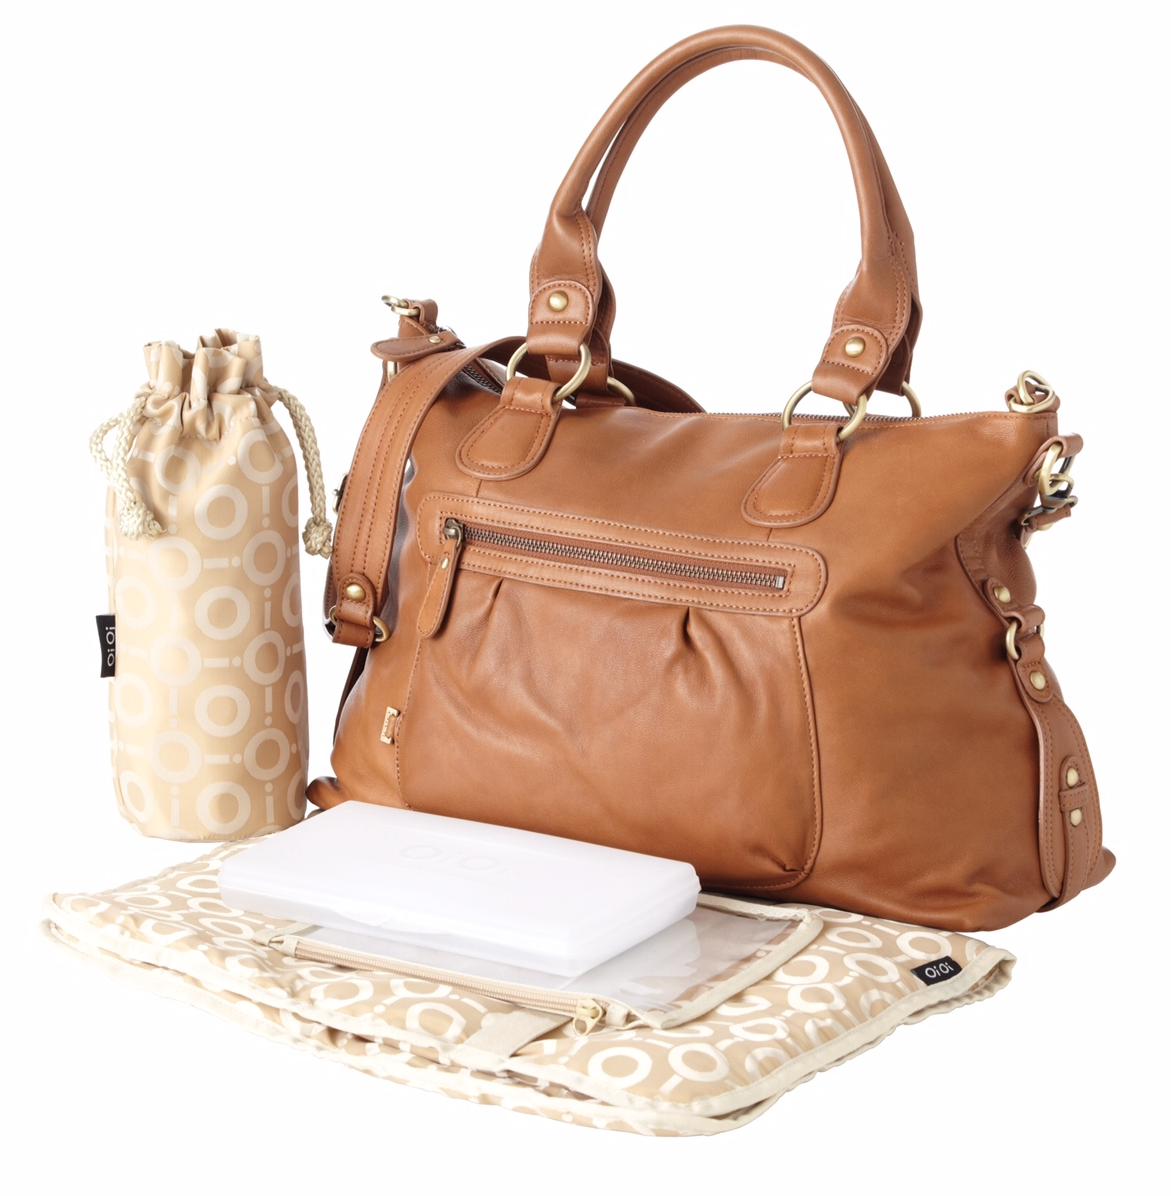 OiOi Tan Leather Slouch Tote Changing Bag